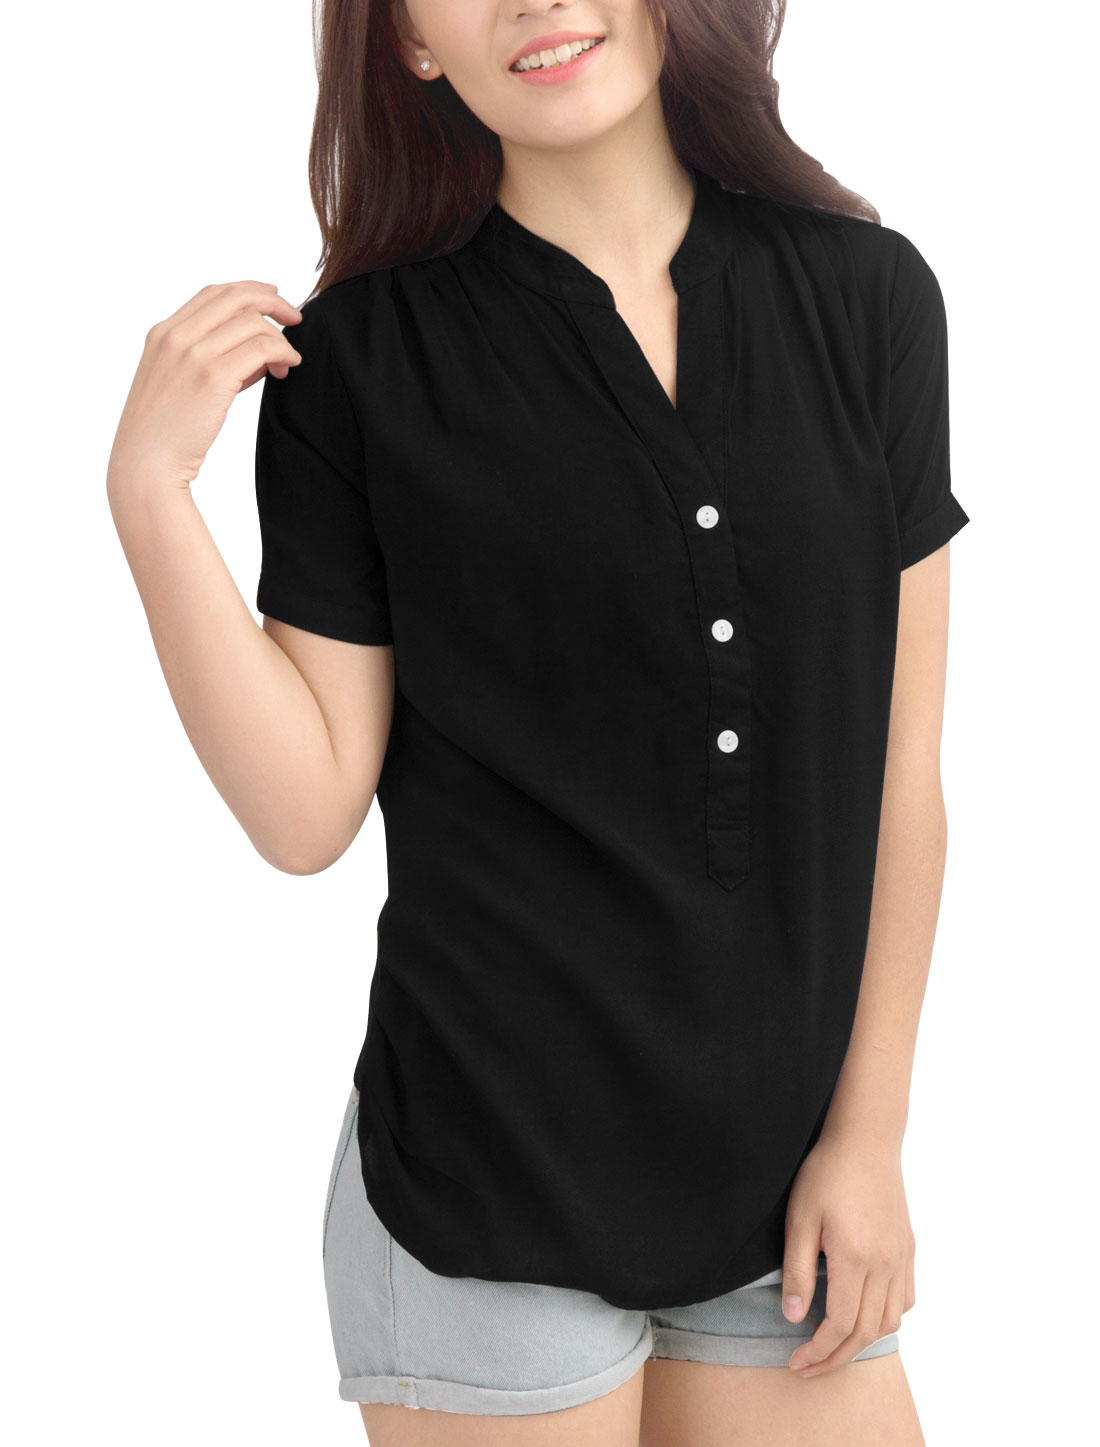 Women Ruched Side Gathered Detail Back Low High Hem Chic Top Shirt Black L